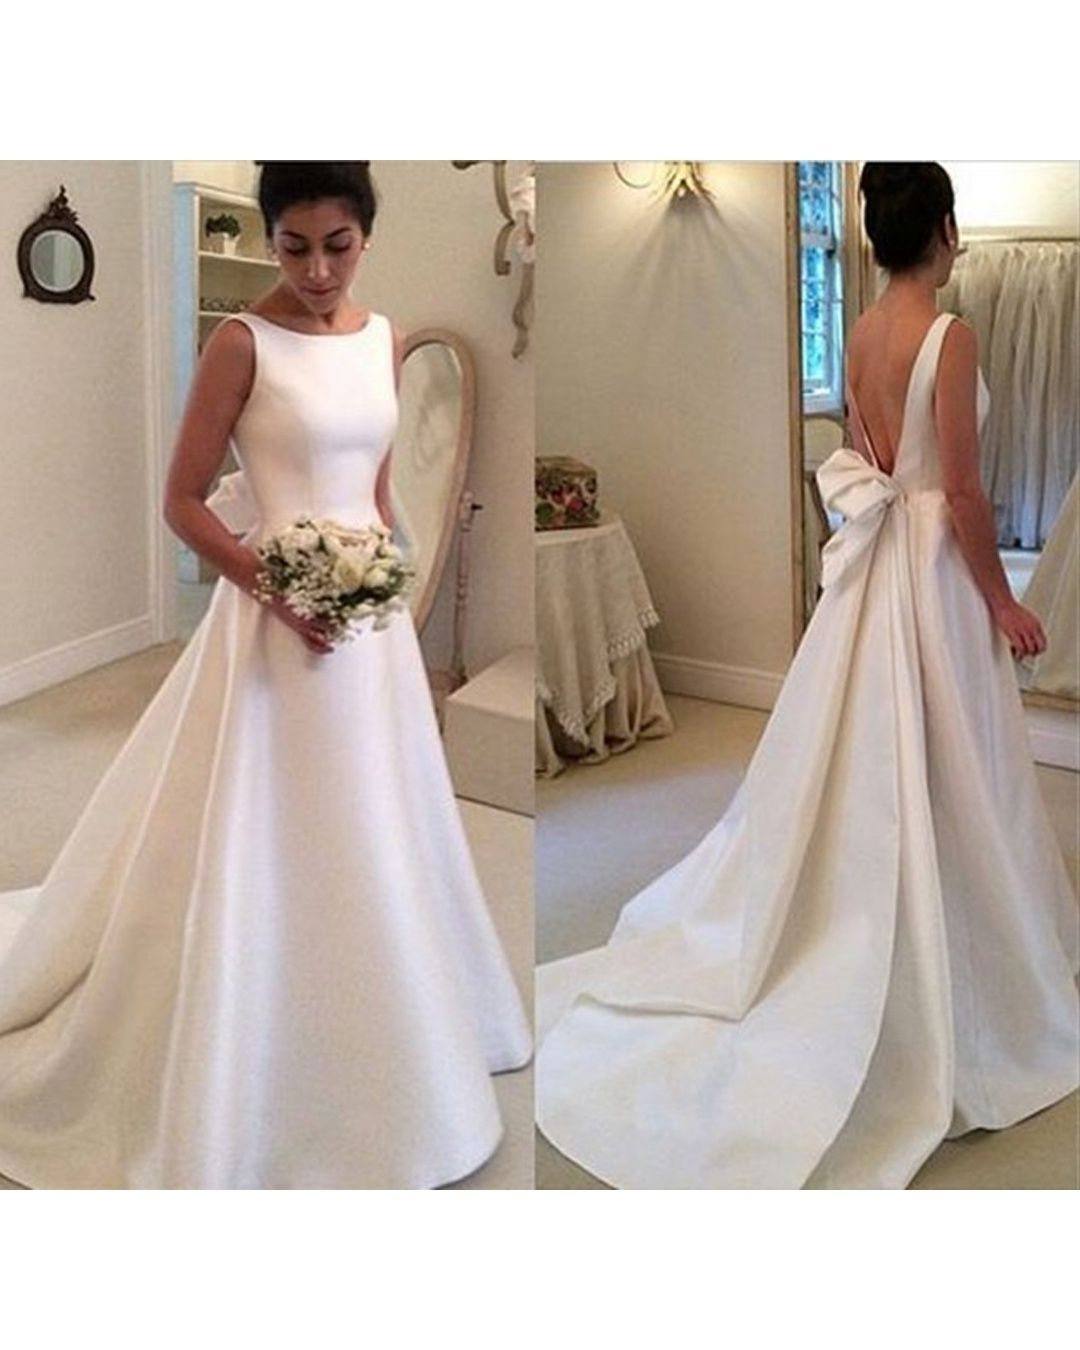 Wedding dress with bow on back  Simple Ball Gown White Satin Long Wedding Dress Open Back Ribbon